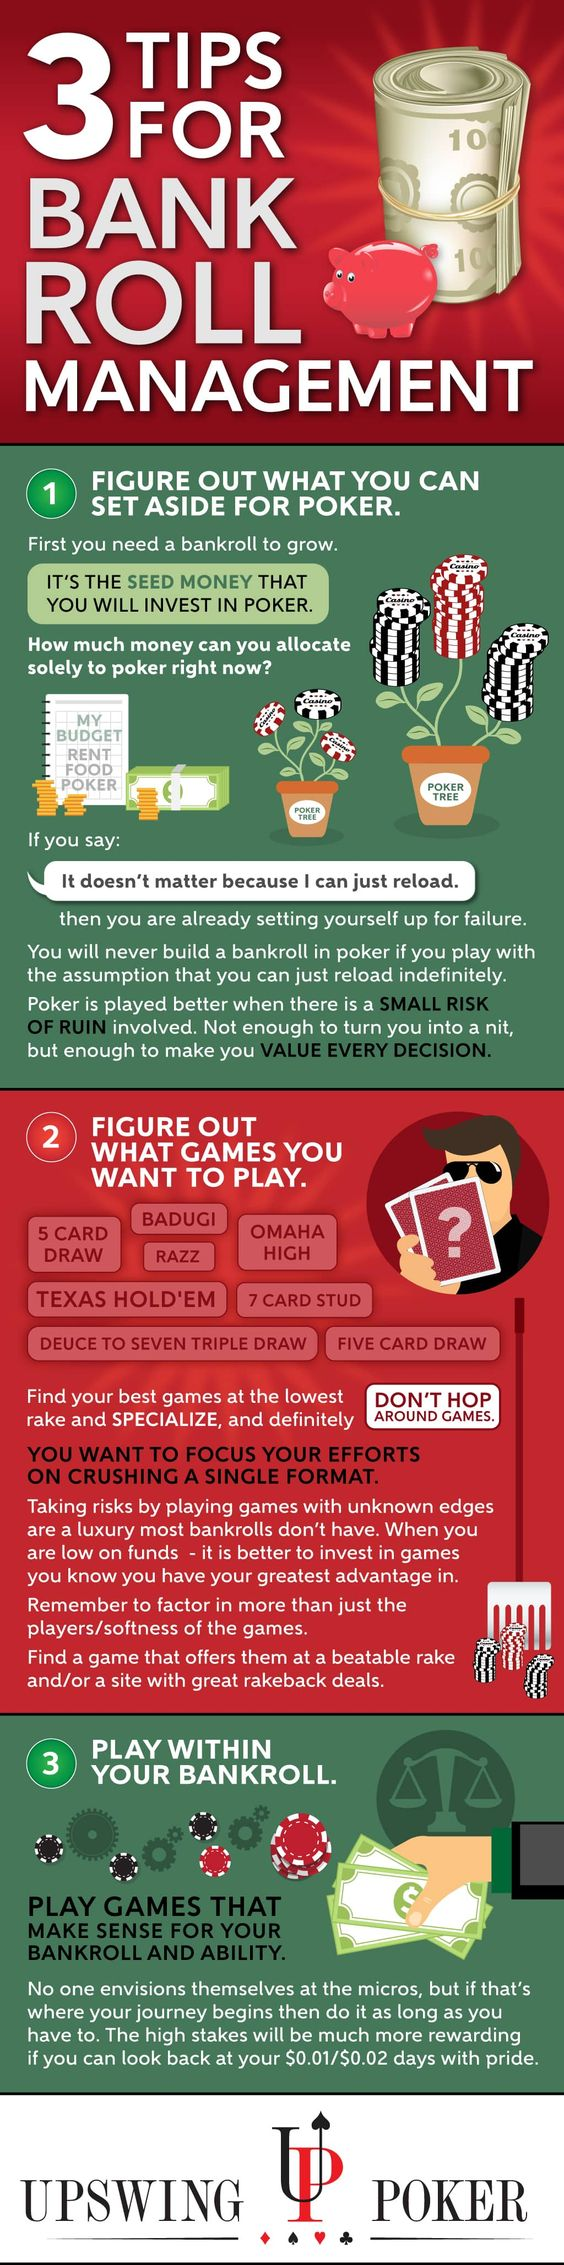 061d9e3faab855776fe817c878bfefe9 - 5 Helpful Tips for Bankrolling Your Poker Hobby